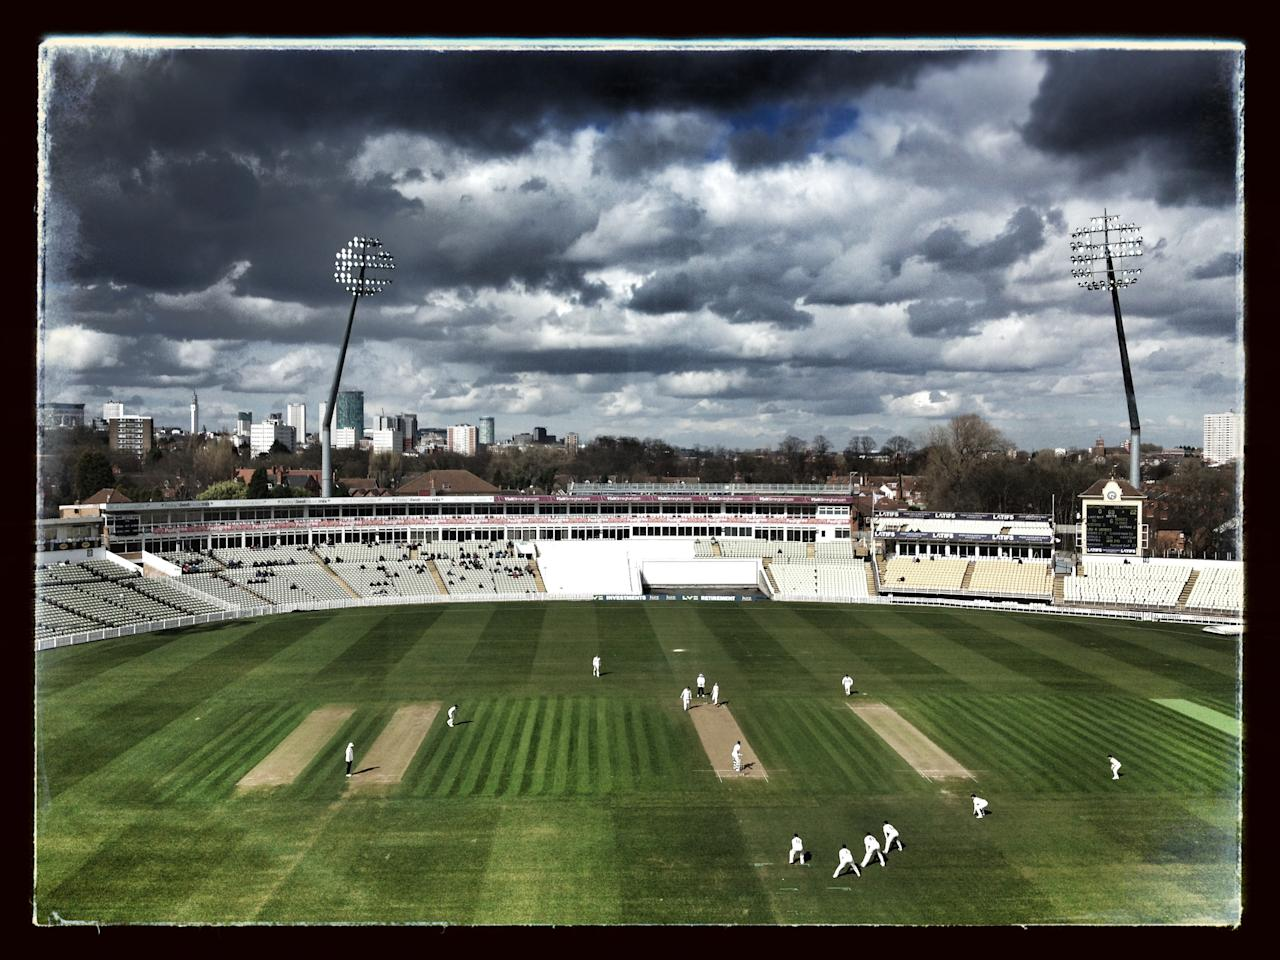 (EDITORS NOTE: This images was processed using digital filters.) General view of play during day two of the LV County Championship Division One game between Warwickshire and Durham at Edgbaston on April 18, 2013 in Birmingham, England. (Photo by Stu Forster/Getty Images)